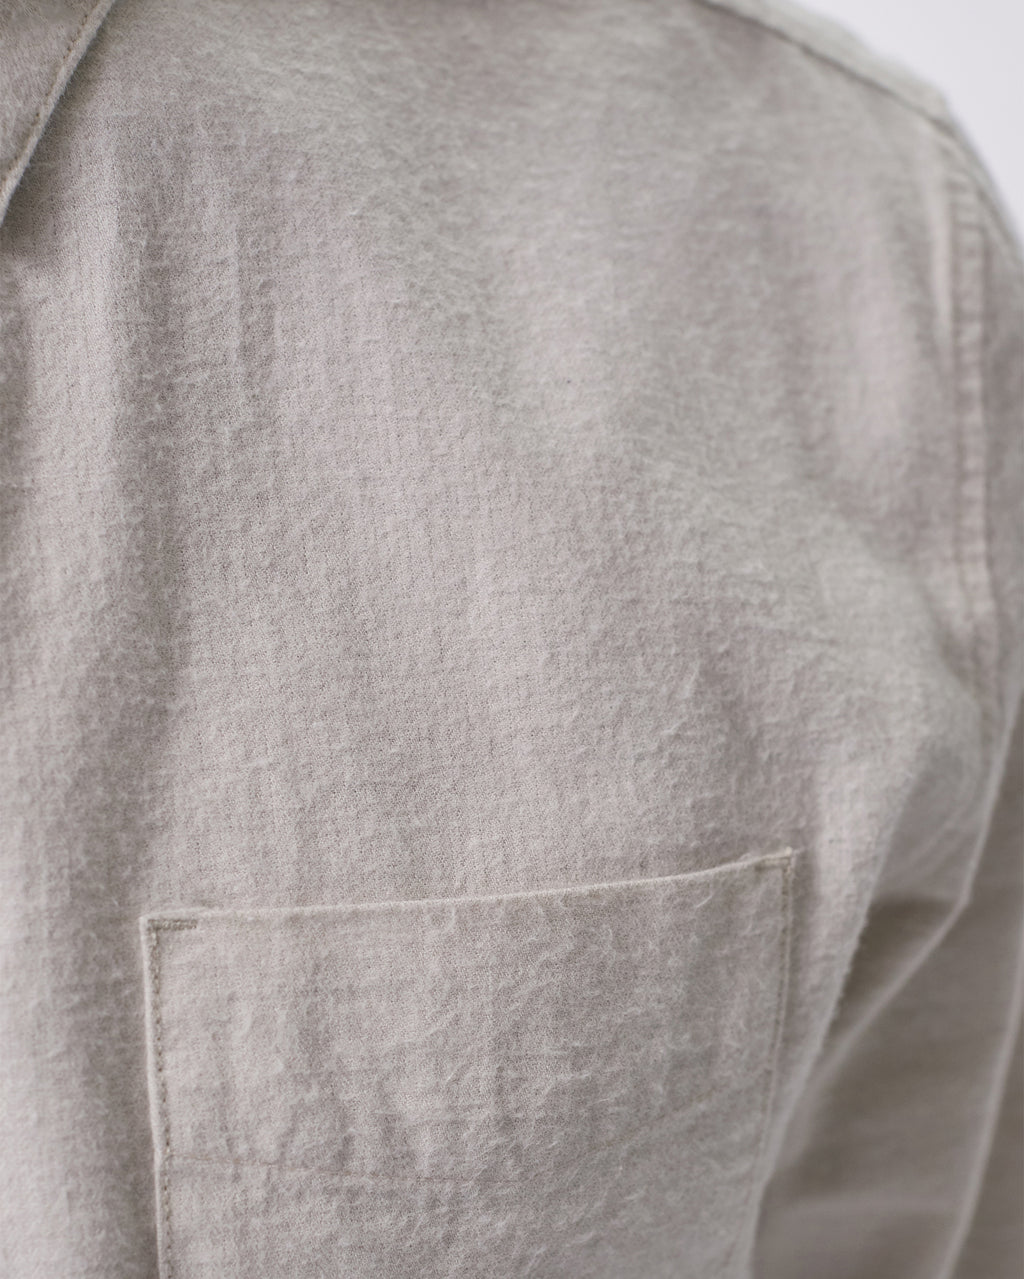 The Hansen Shirt in Stone